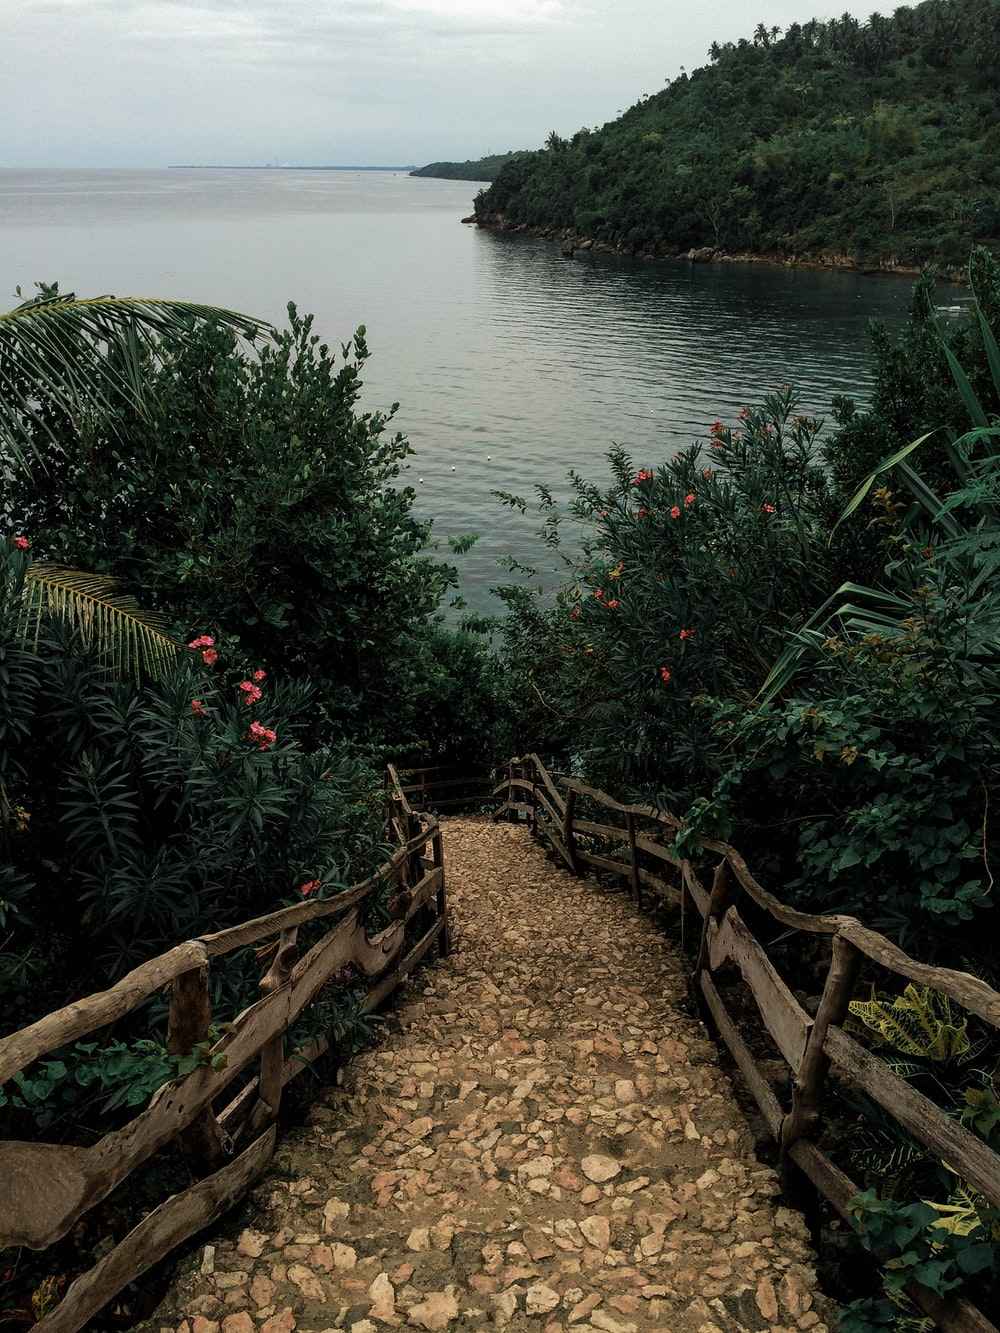 pathway in between plants leading to body of water